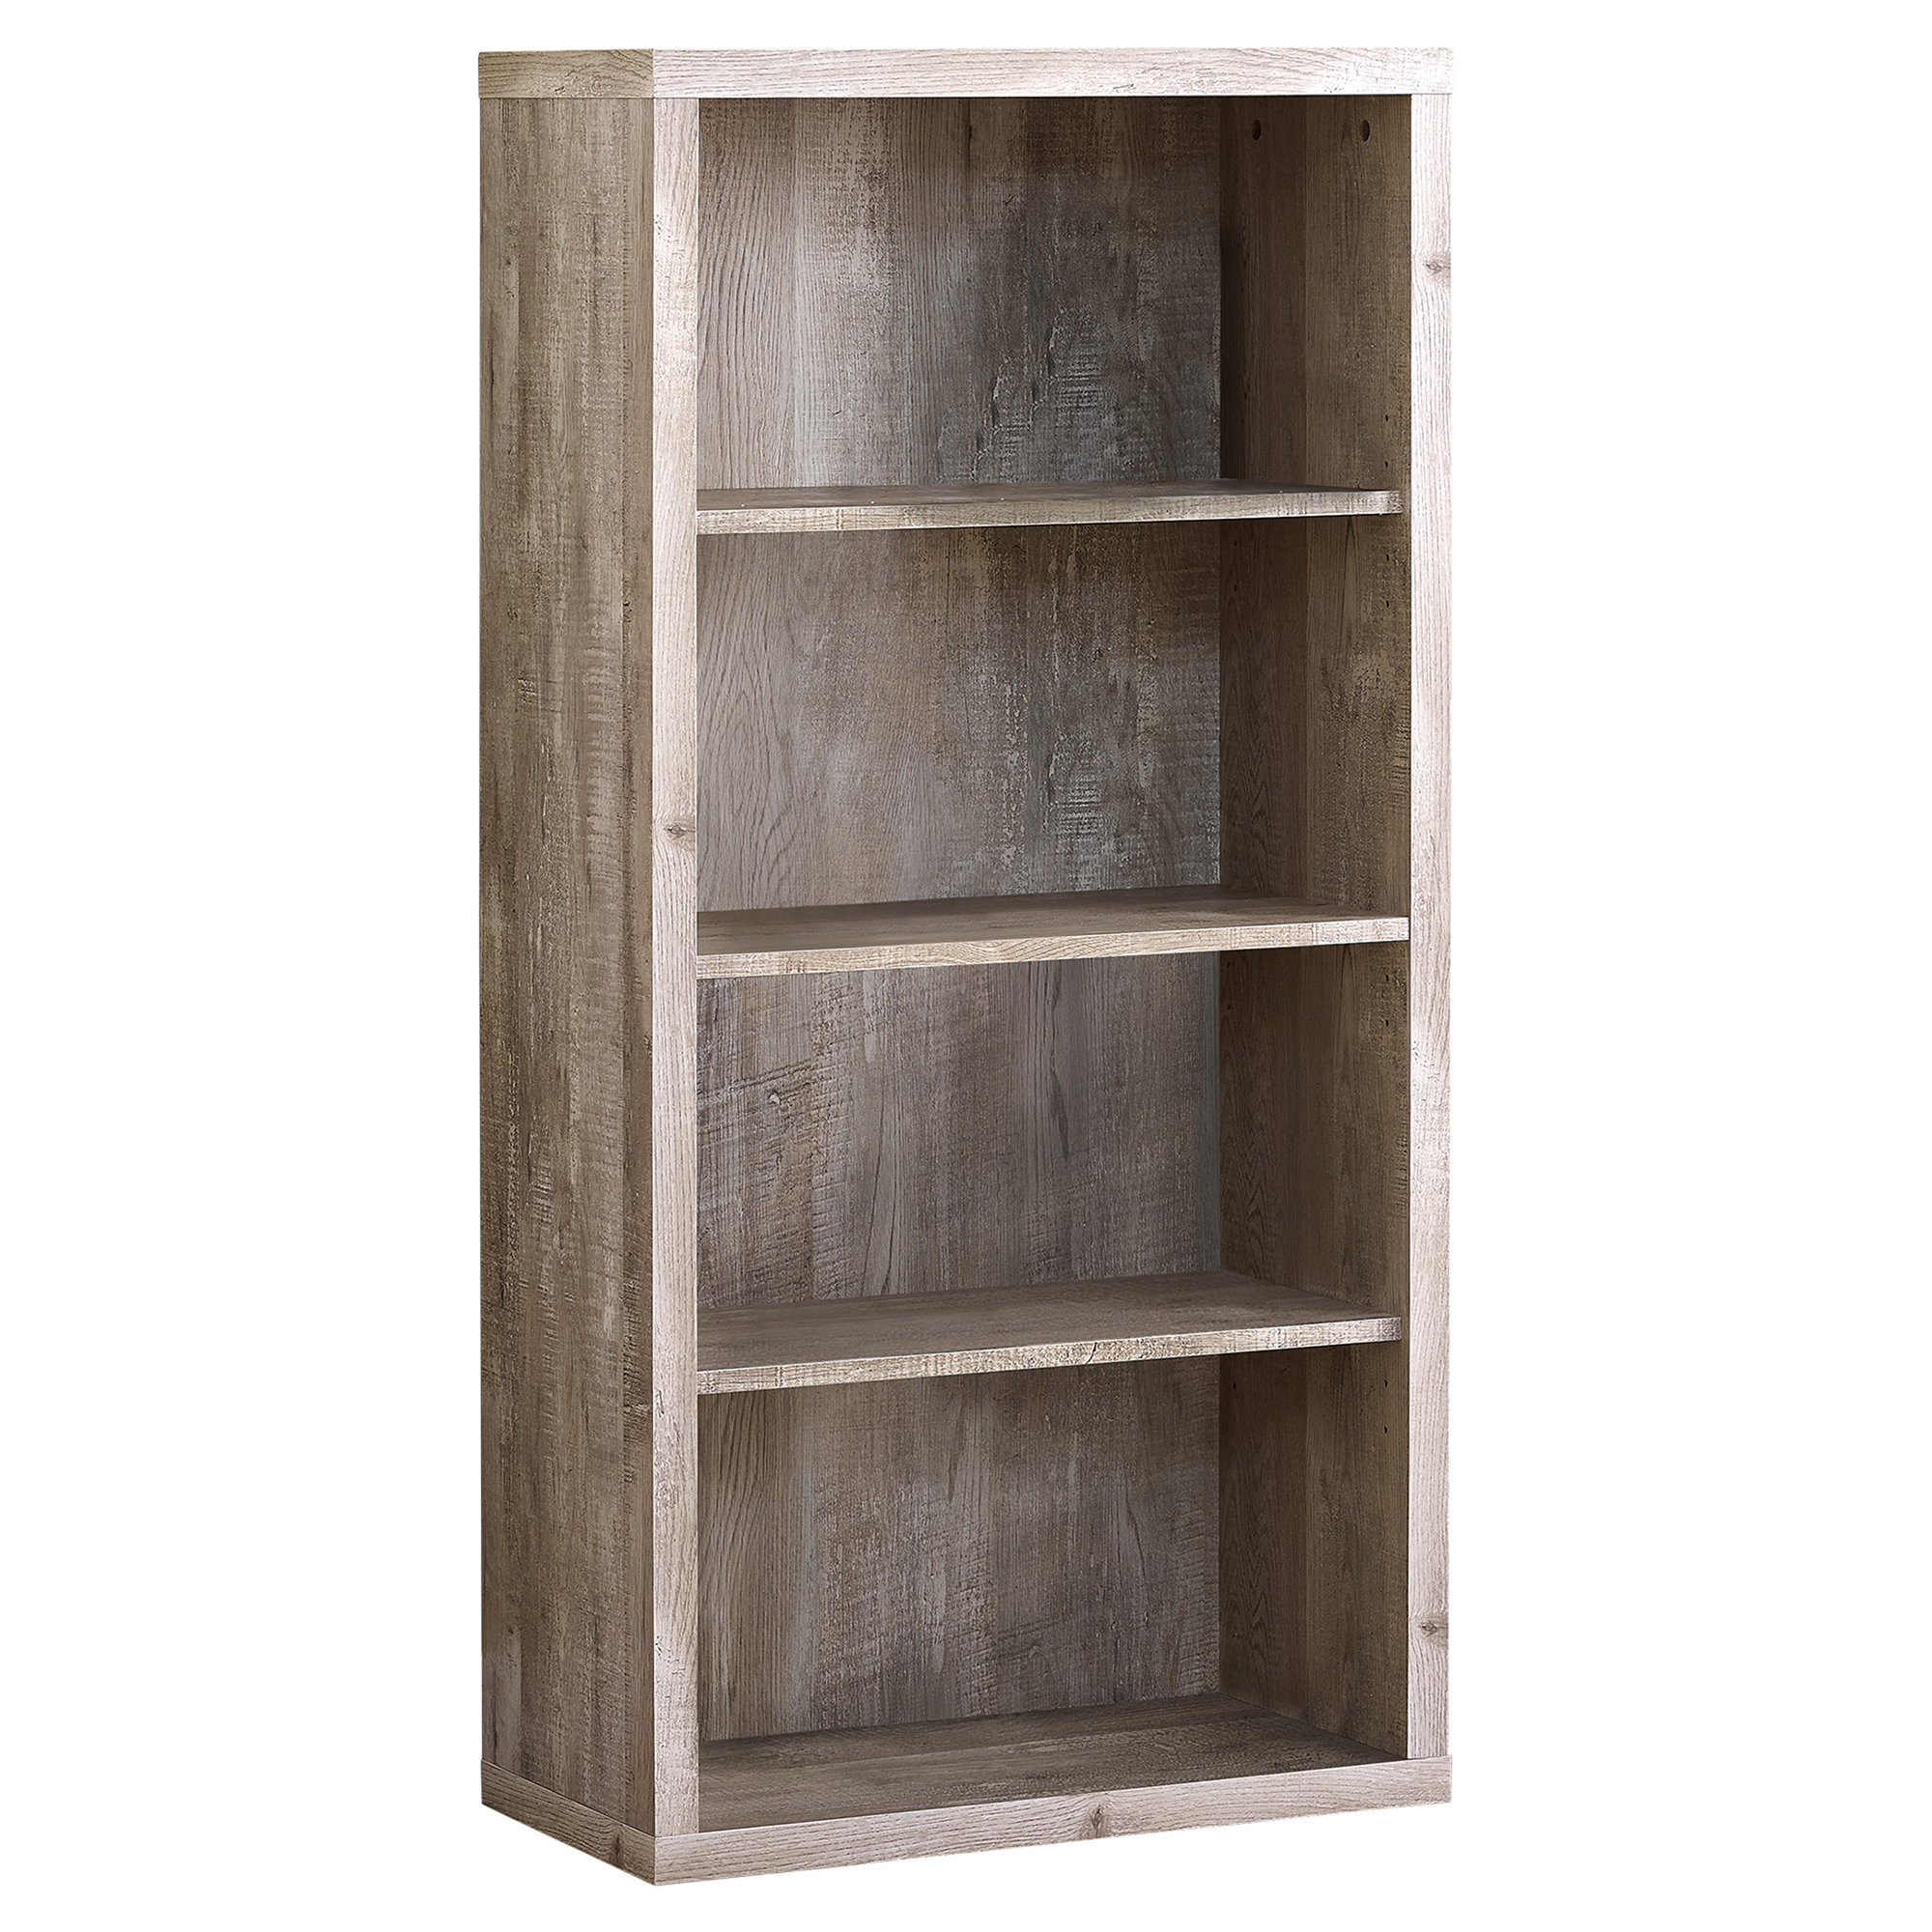 "BOOKCASE - 48""H / TAUPE WOOD GRAIN / ADJUSTABLE SHELVES"